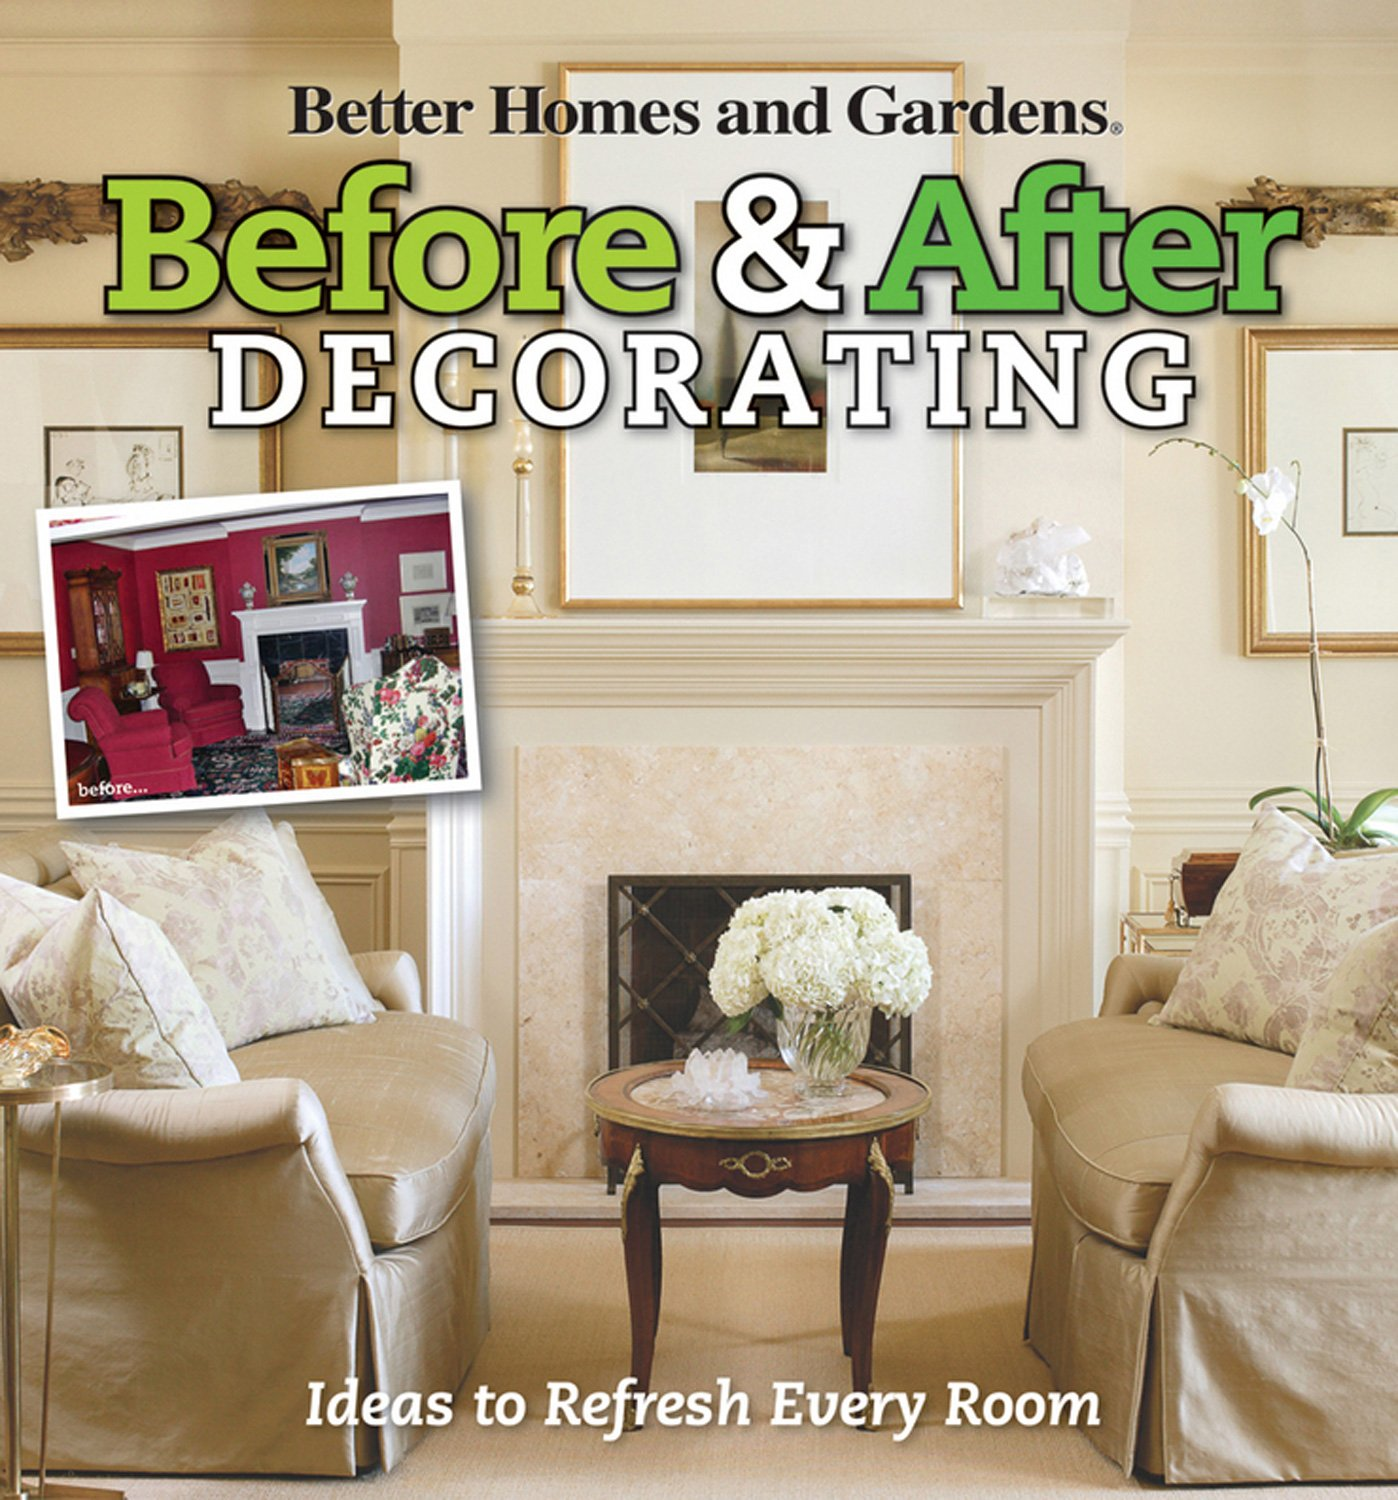 Before & After Decorating (Better Homes and Gardens Home): Better ...